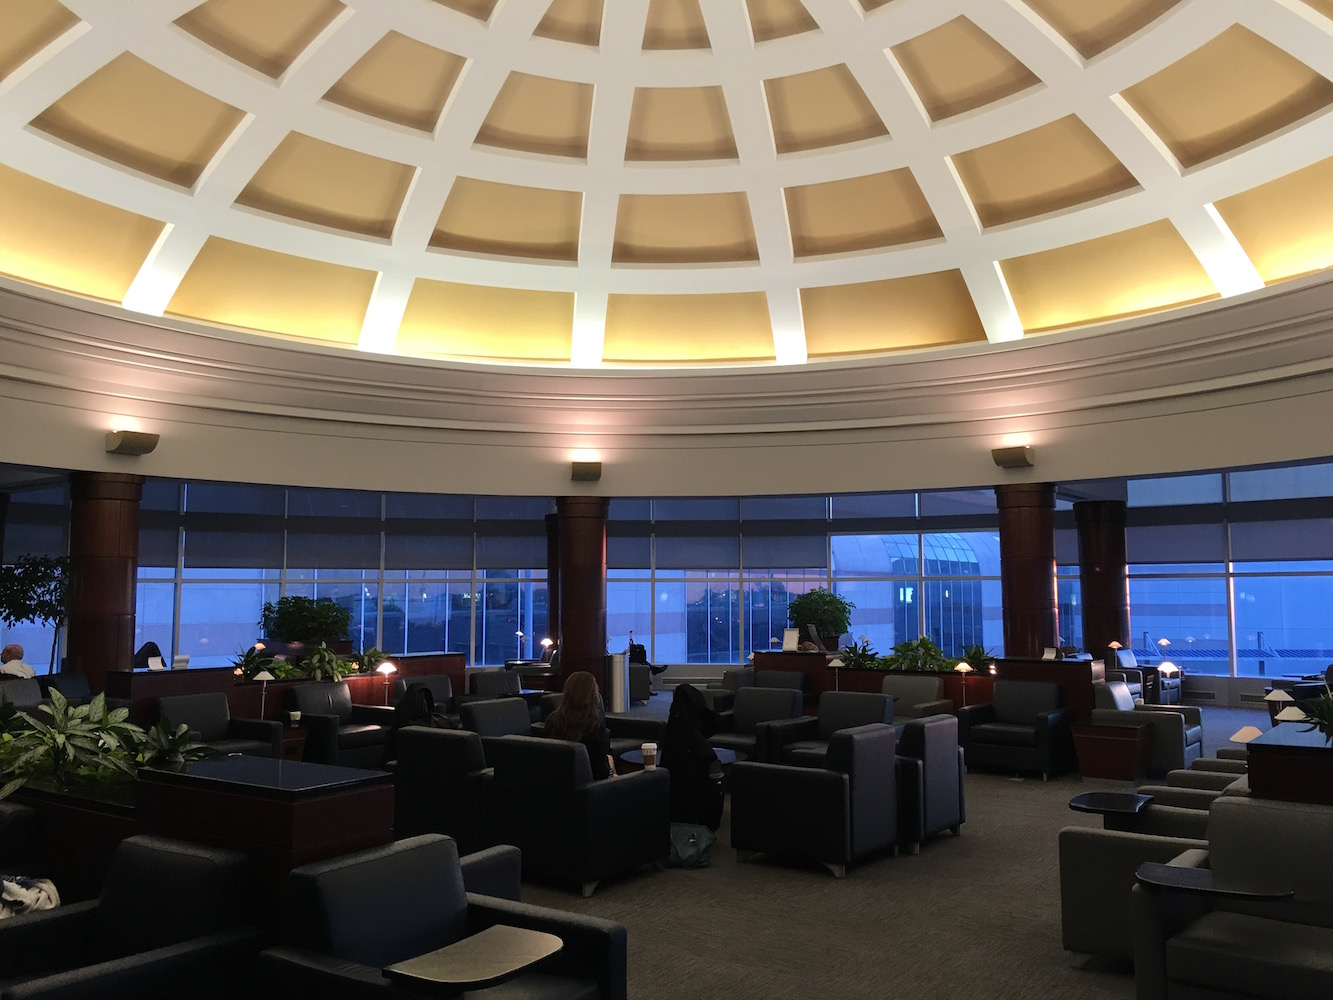 The American Airlines Admirals Club at the Charlotte Douglas International Airport (CLT) in Charlotte, NC is instantly recognizable thanks to its elegant rotunda.